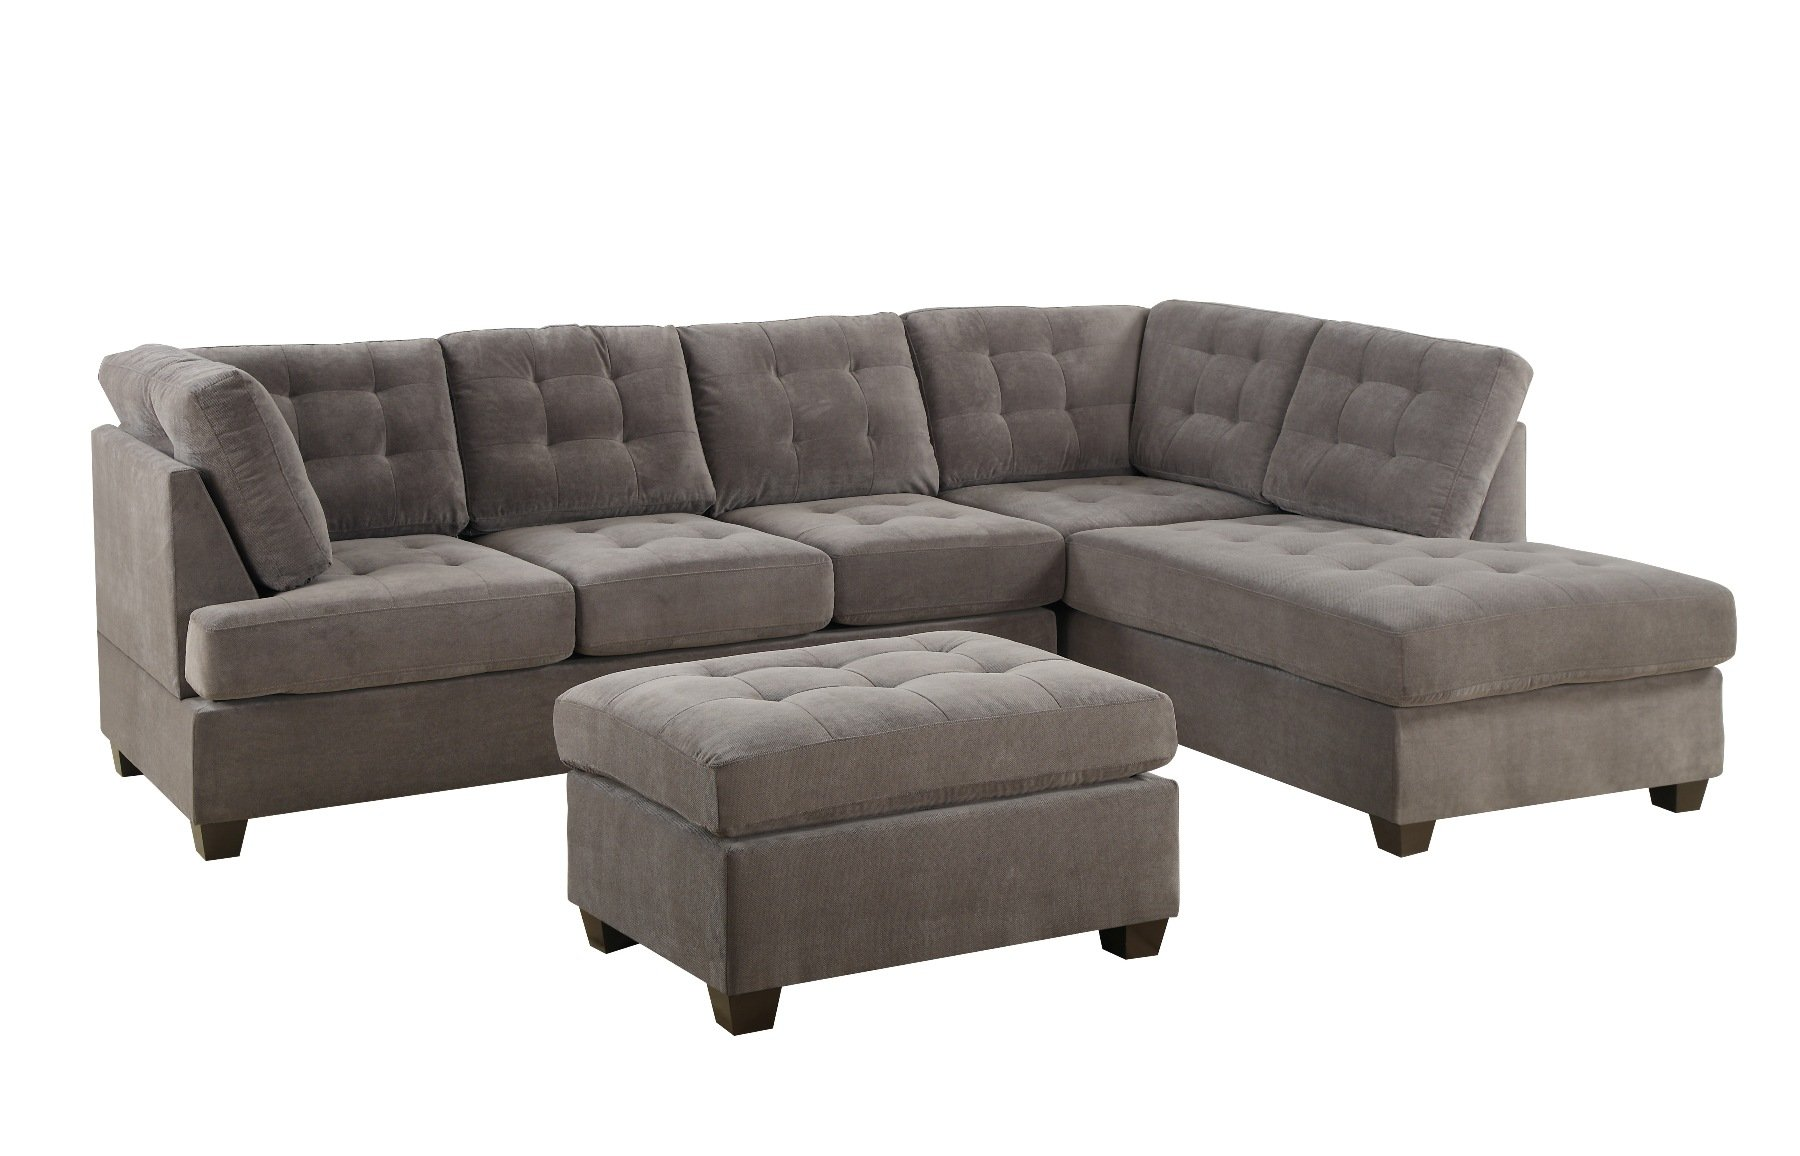 Bobkona Michelson 3Piece Reversible Sectional with Ottoman Sofa